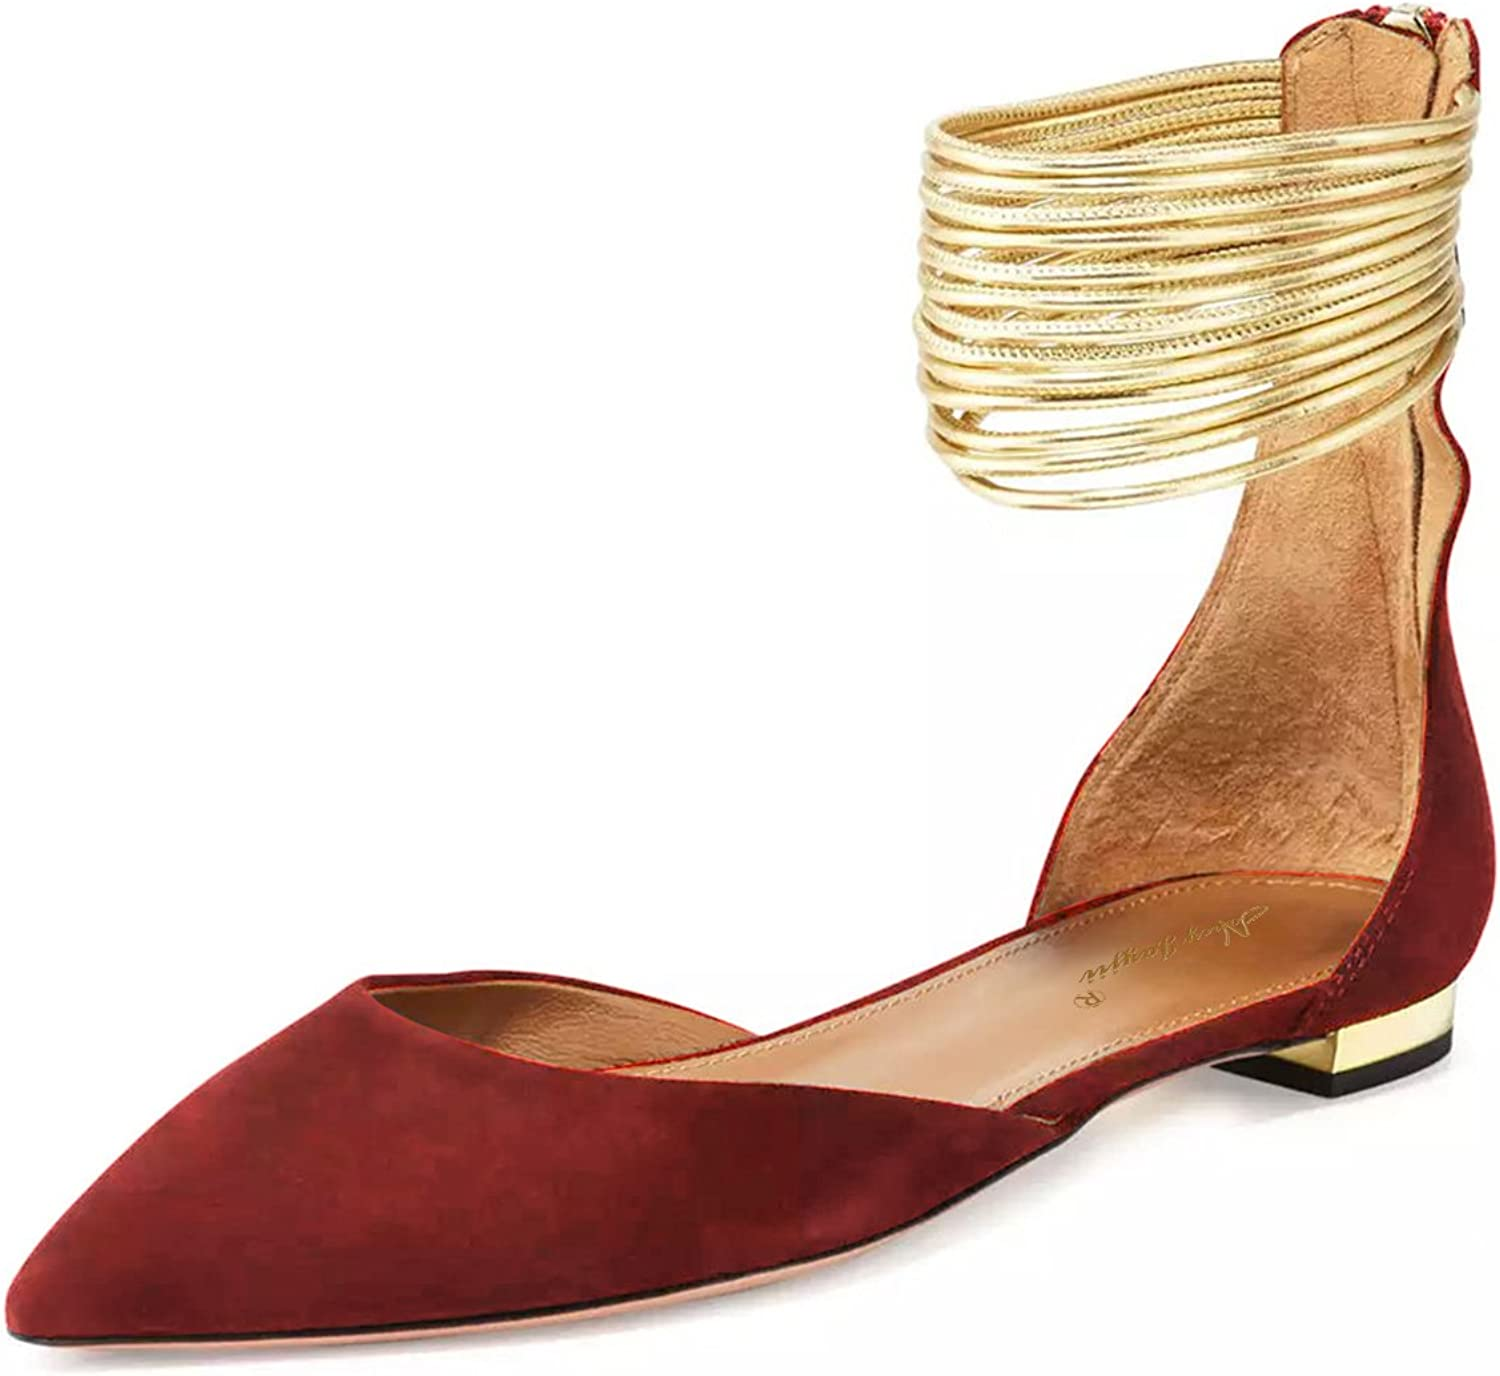 NJ Womens Pointed Toe Faux Suede D'Orsay Flats Ankle Strap Casual Dress shoes with Zips